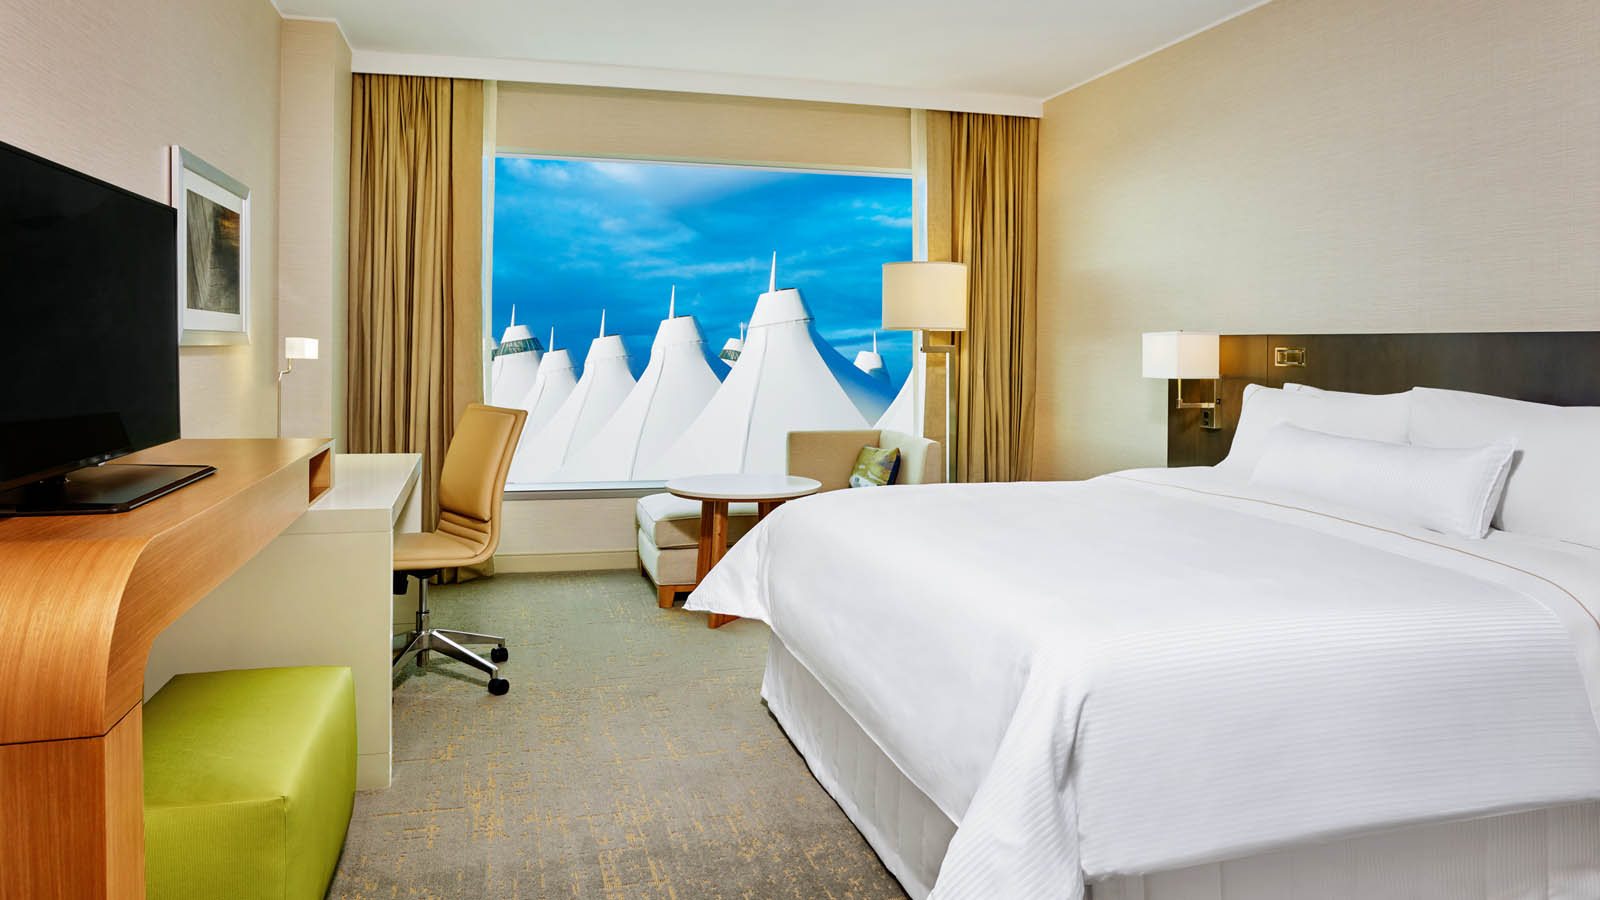 Denver Airport Lodging - Business Class Guestroom